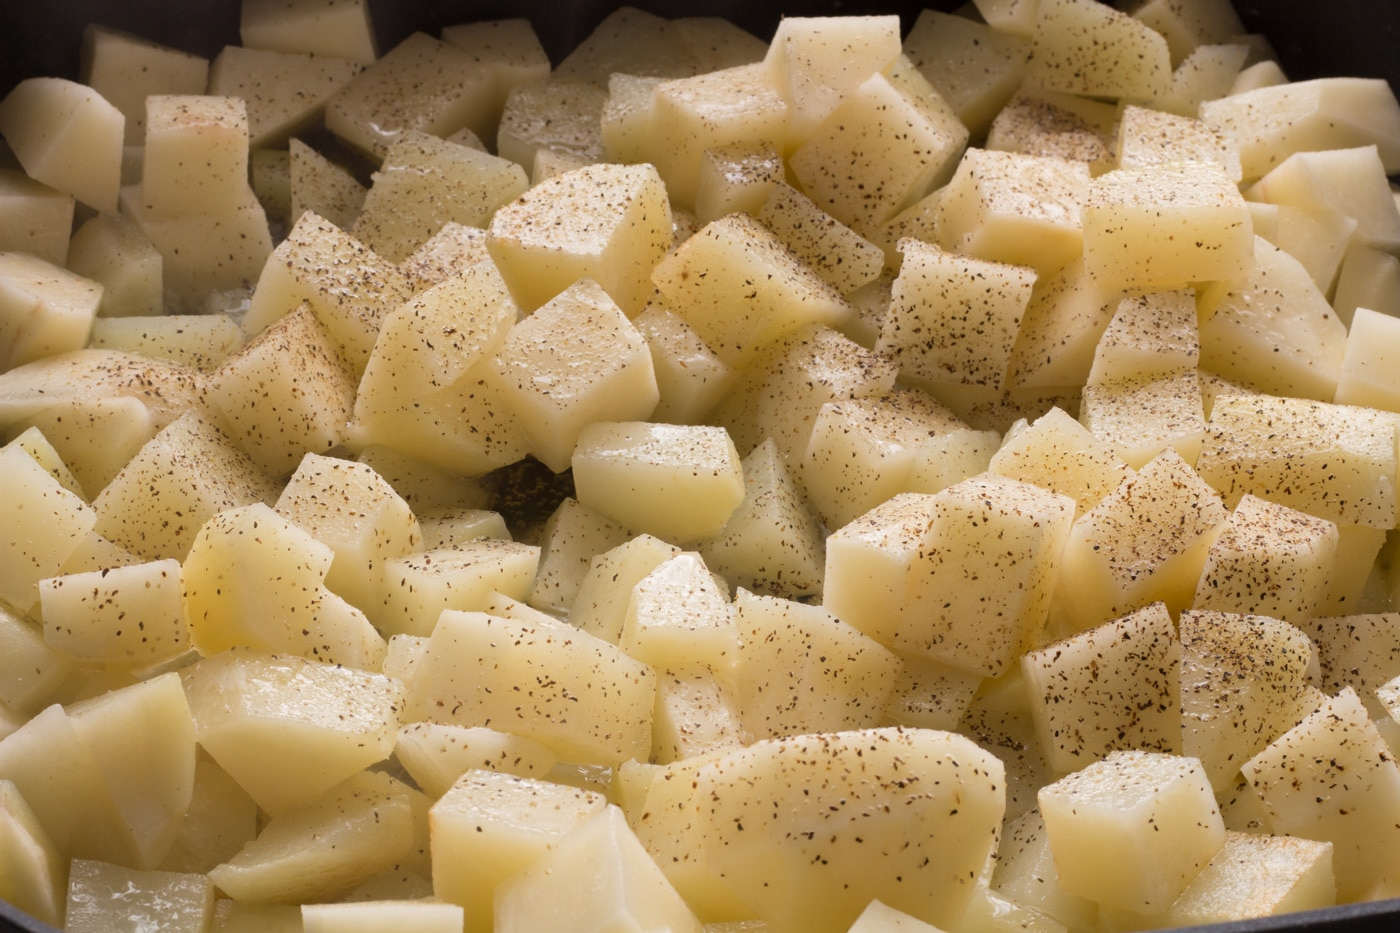 Diced potatoes with black pepper and oil